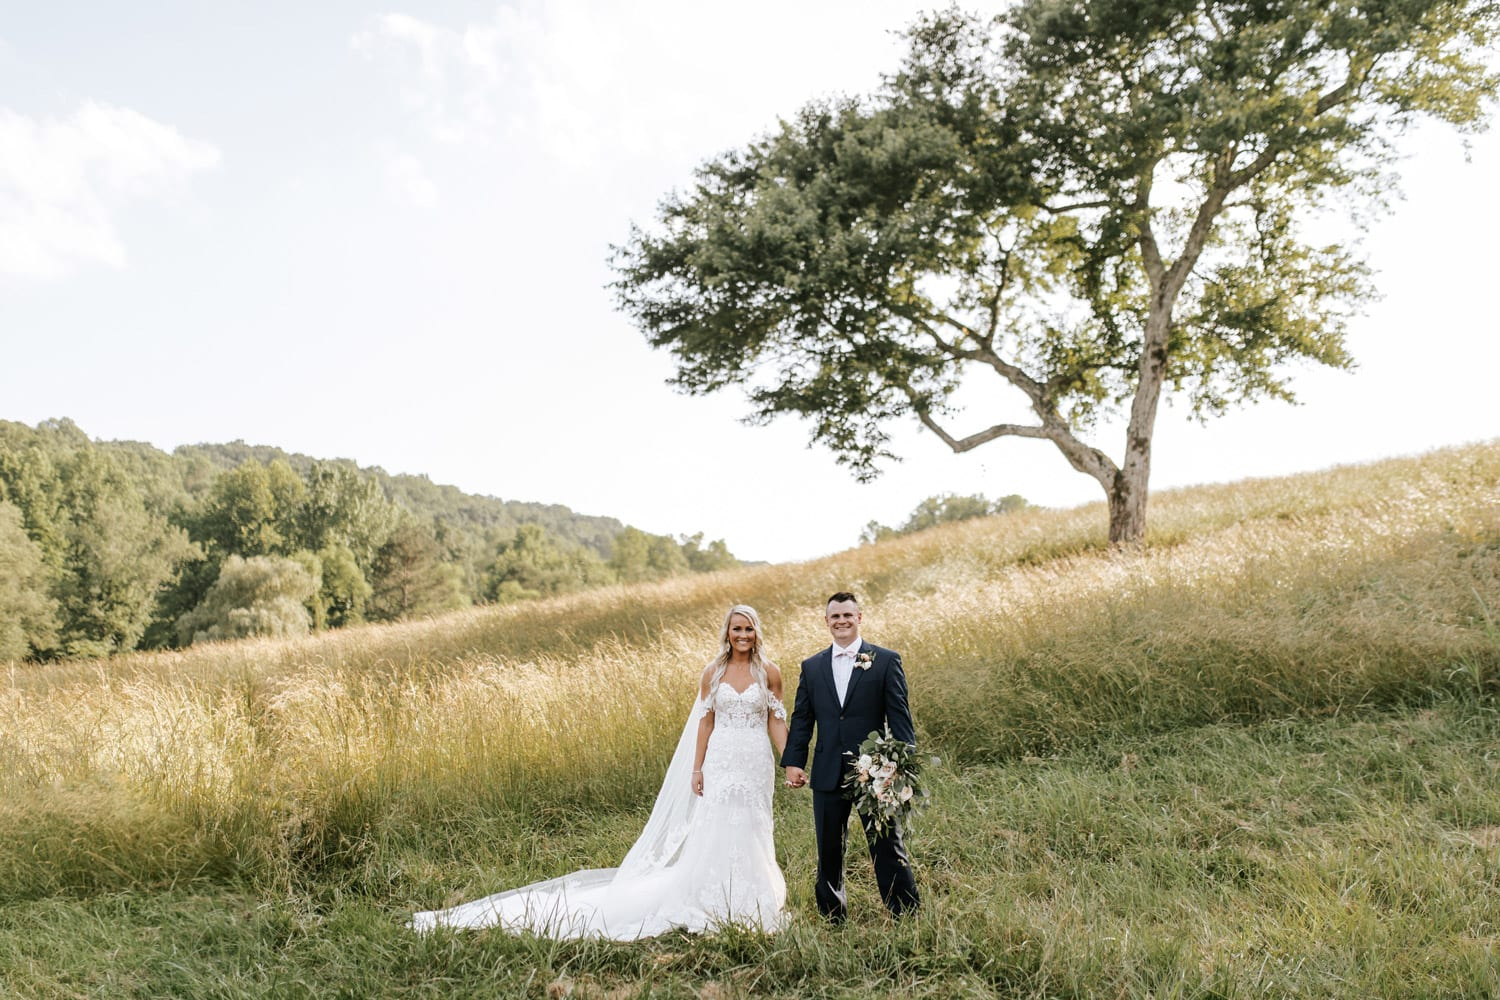 Bride and groom hold hands in pasture in front of tree